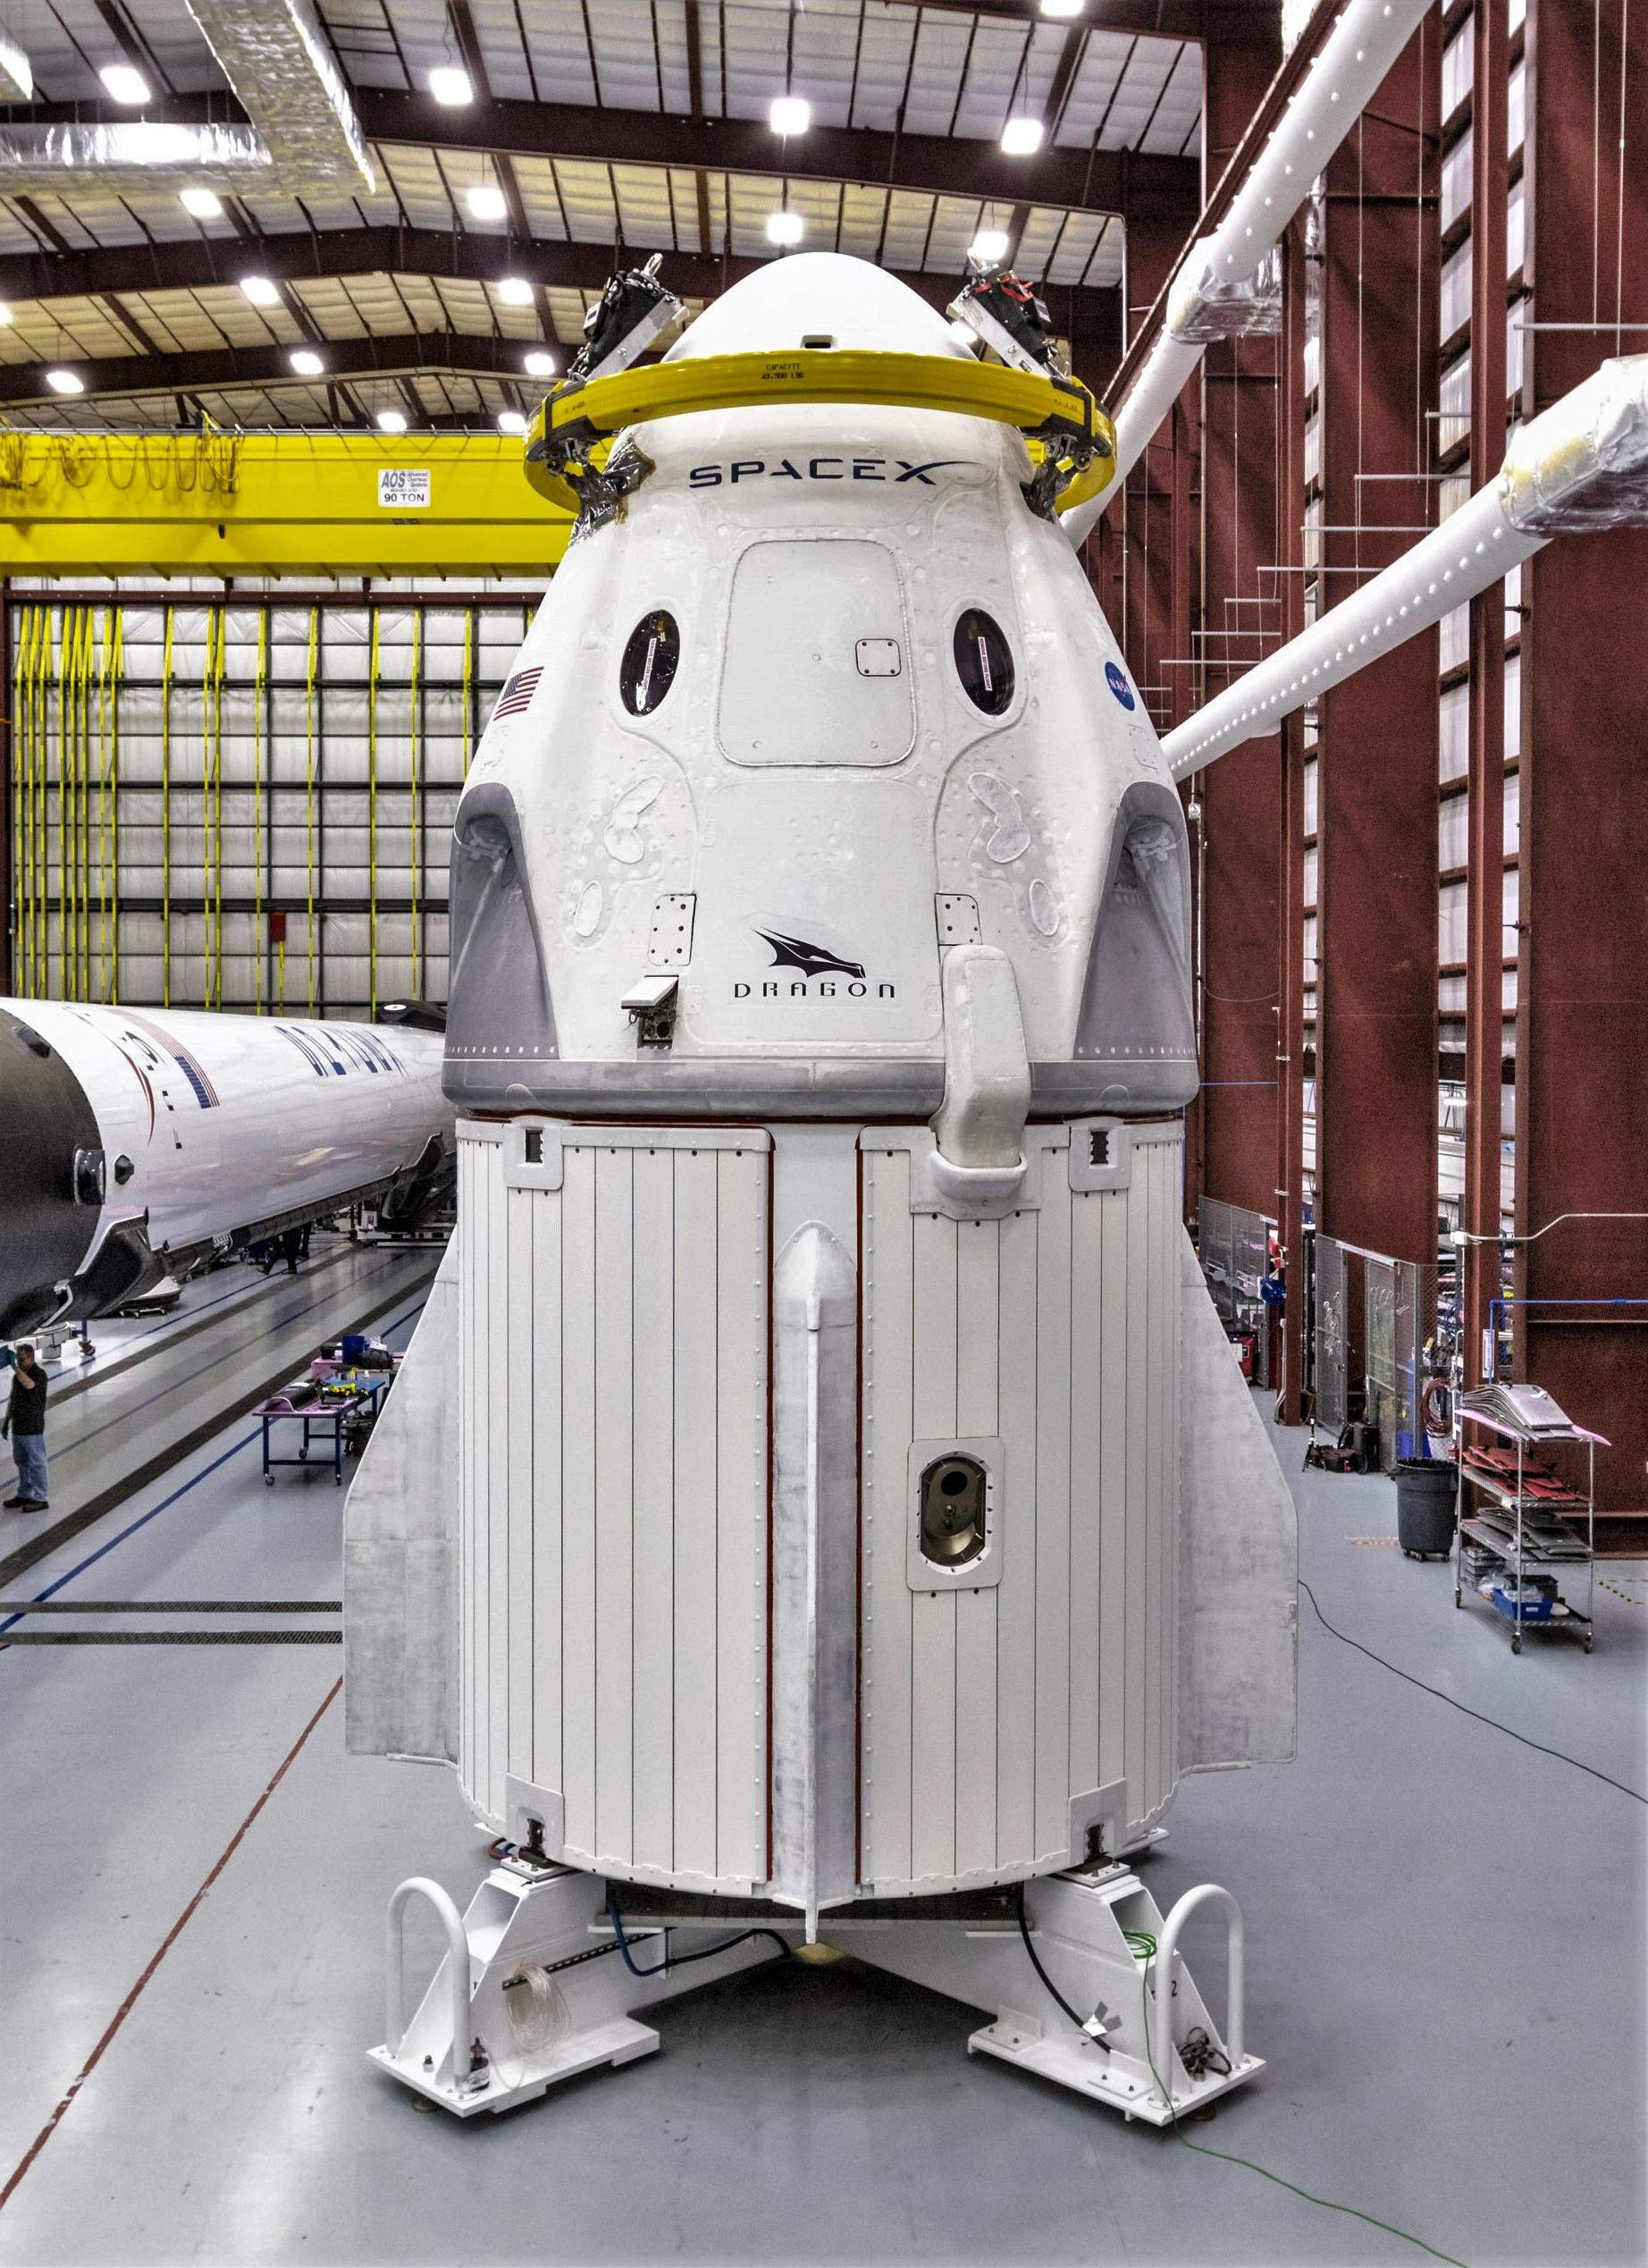 Crew Dragon DM-1 and Falcon 9 B1051 39A (SpaceX) 3 tall(c)